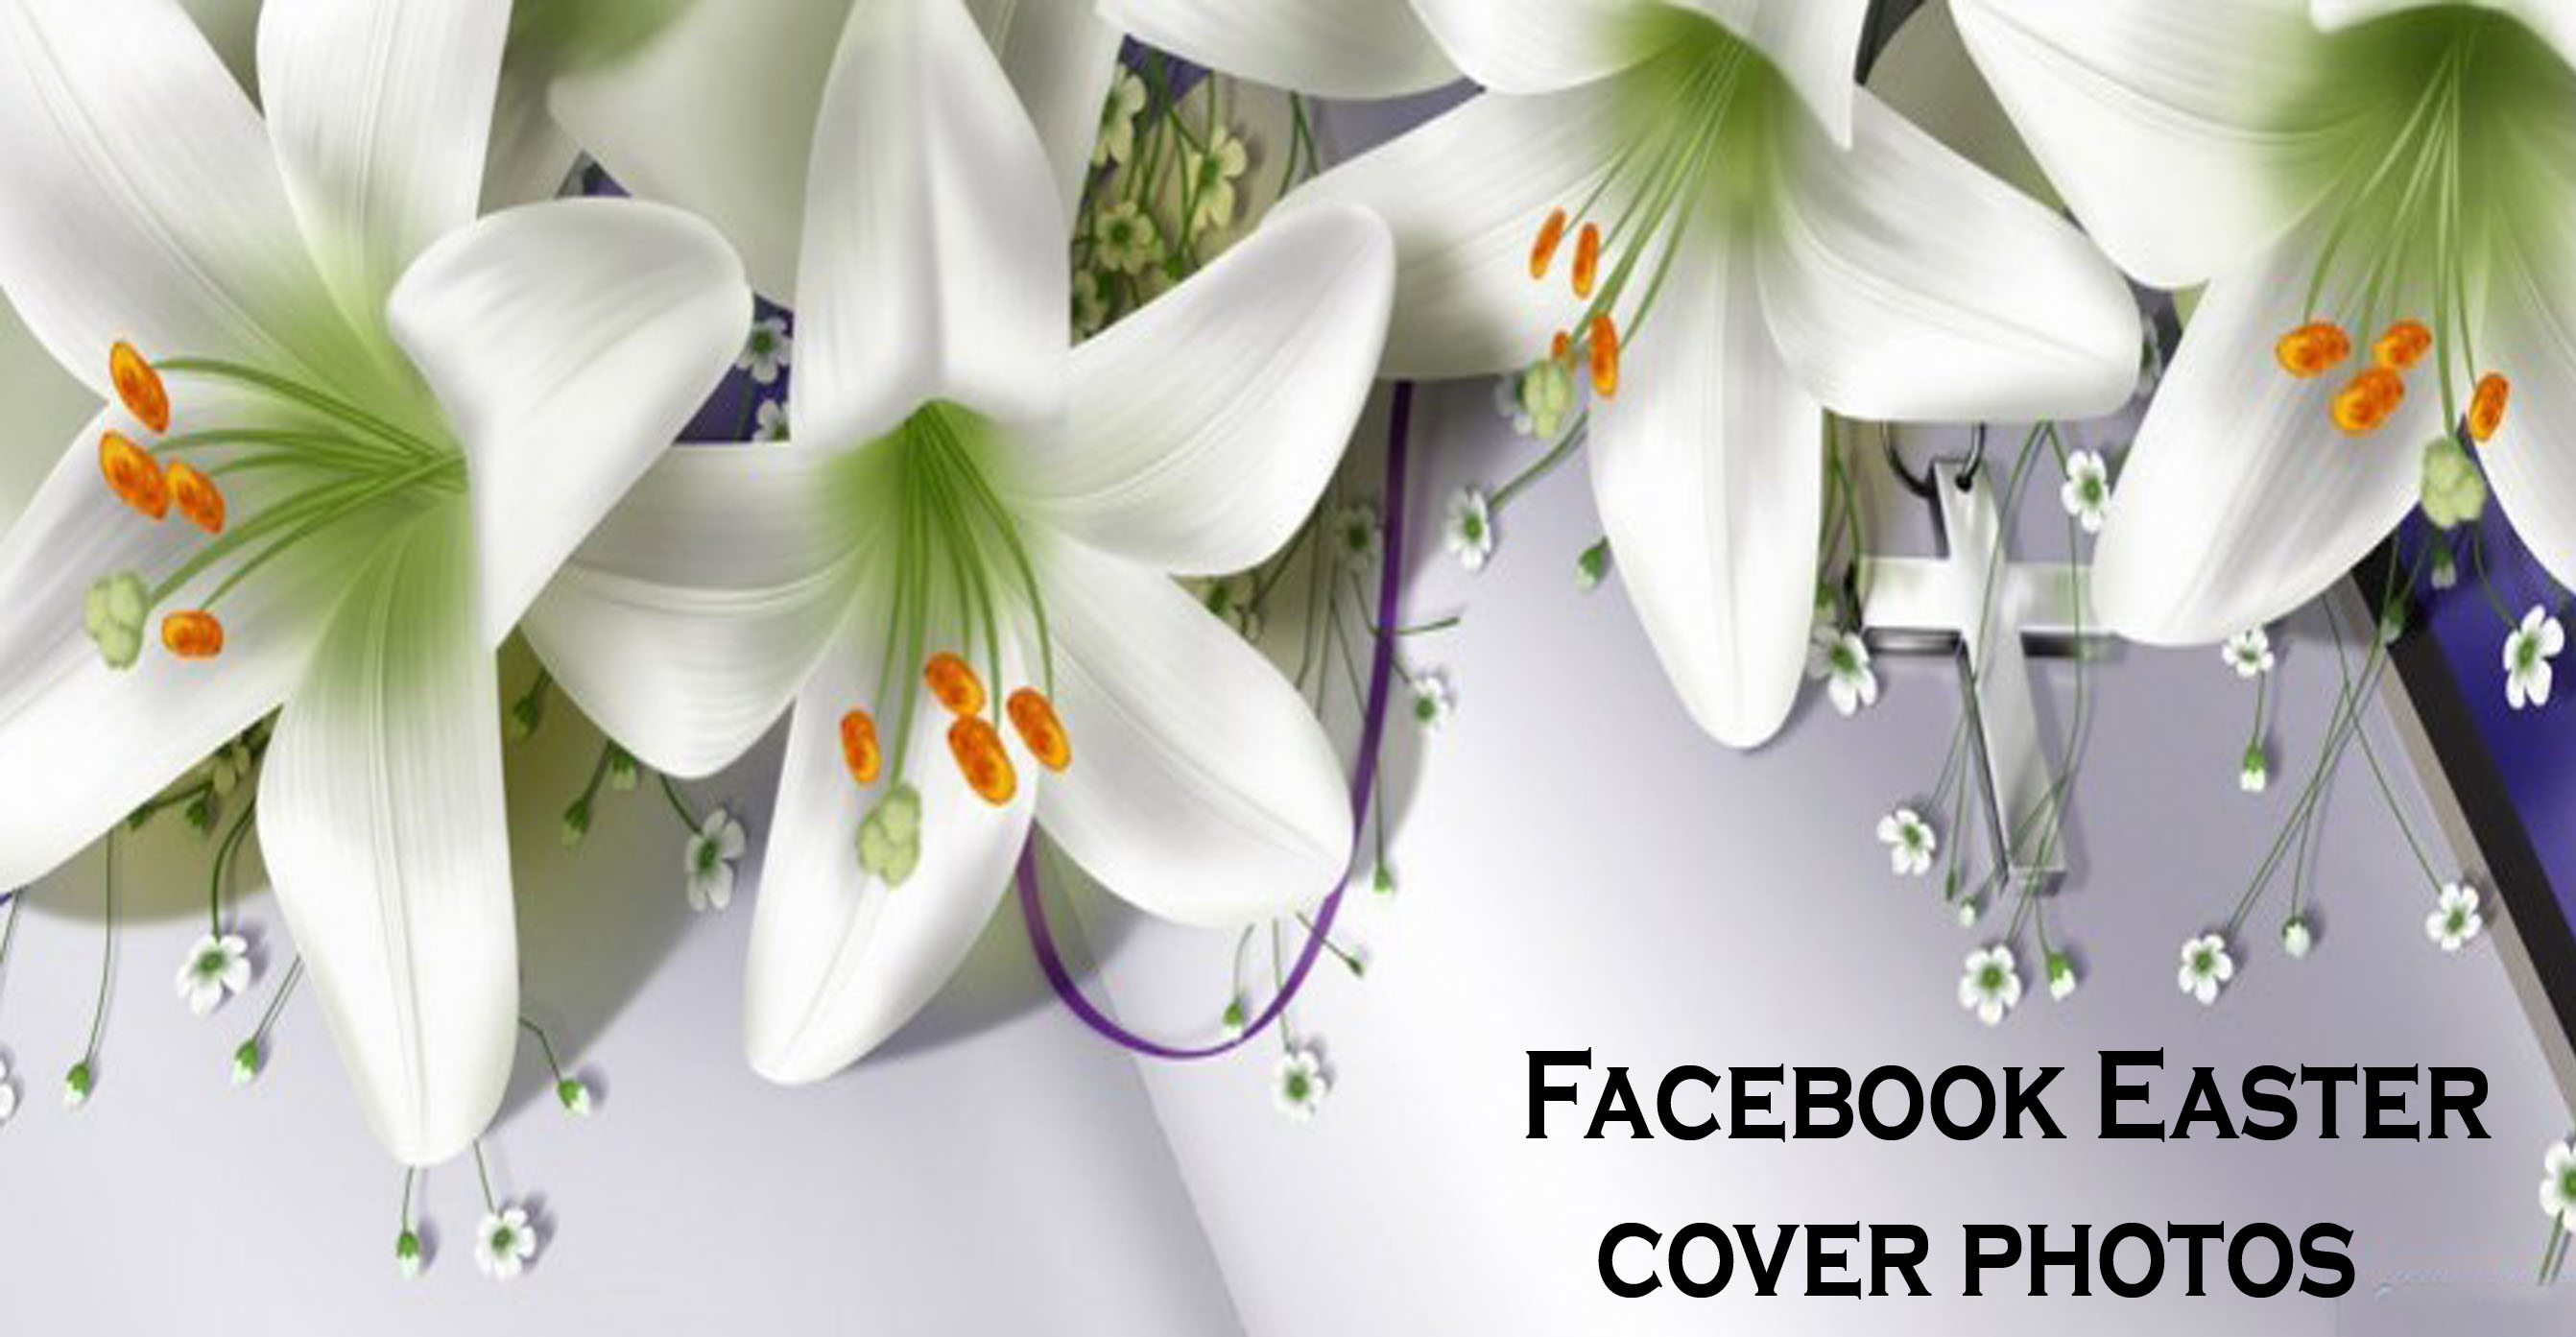 Facebook Easter cover photos - Facebook Account